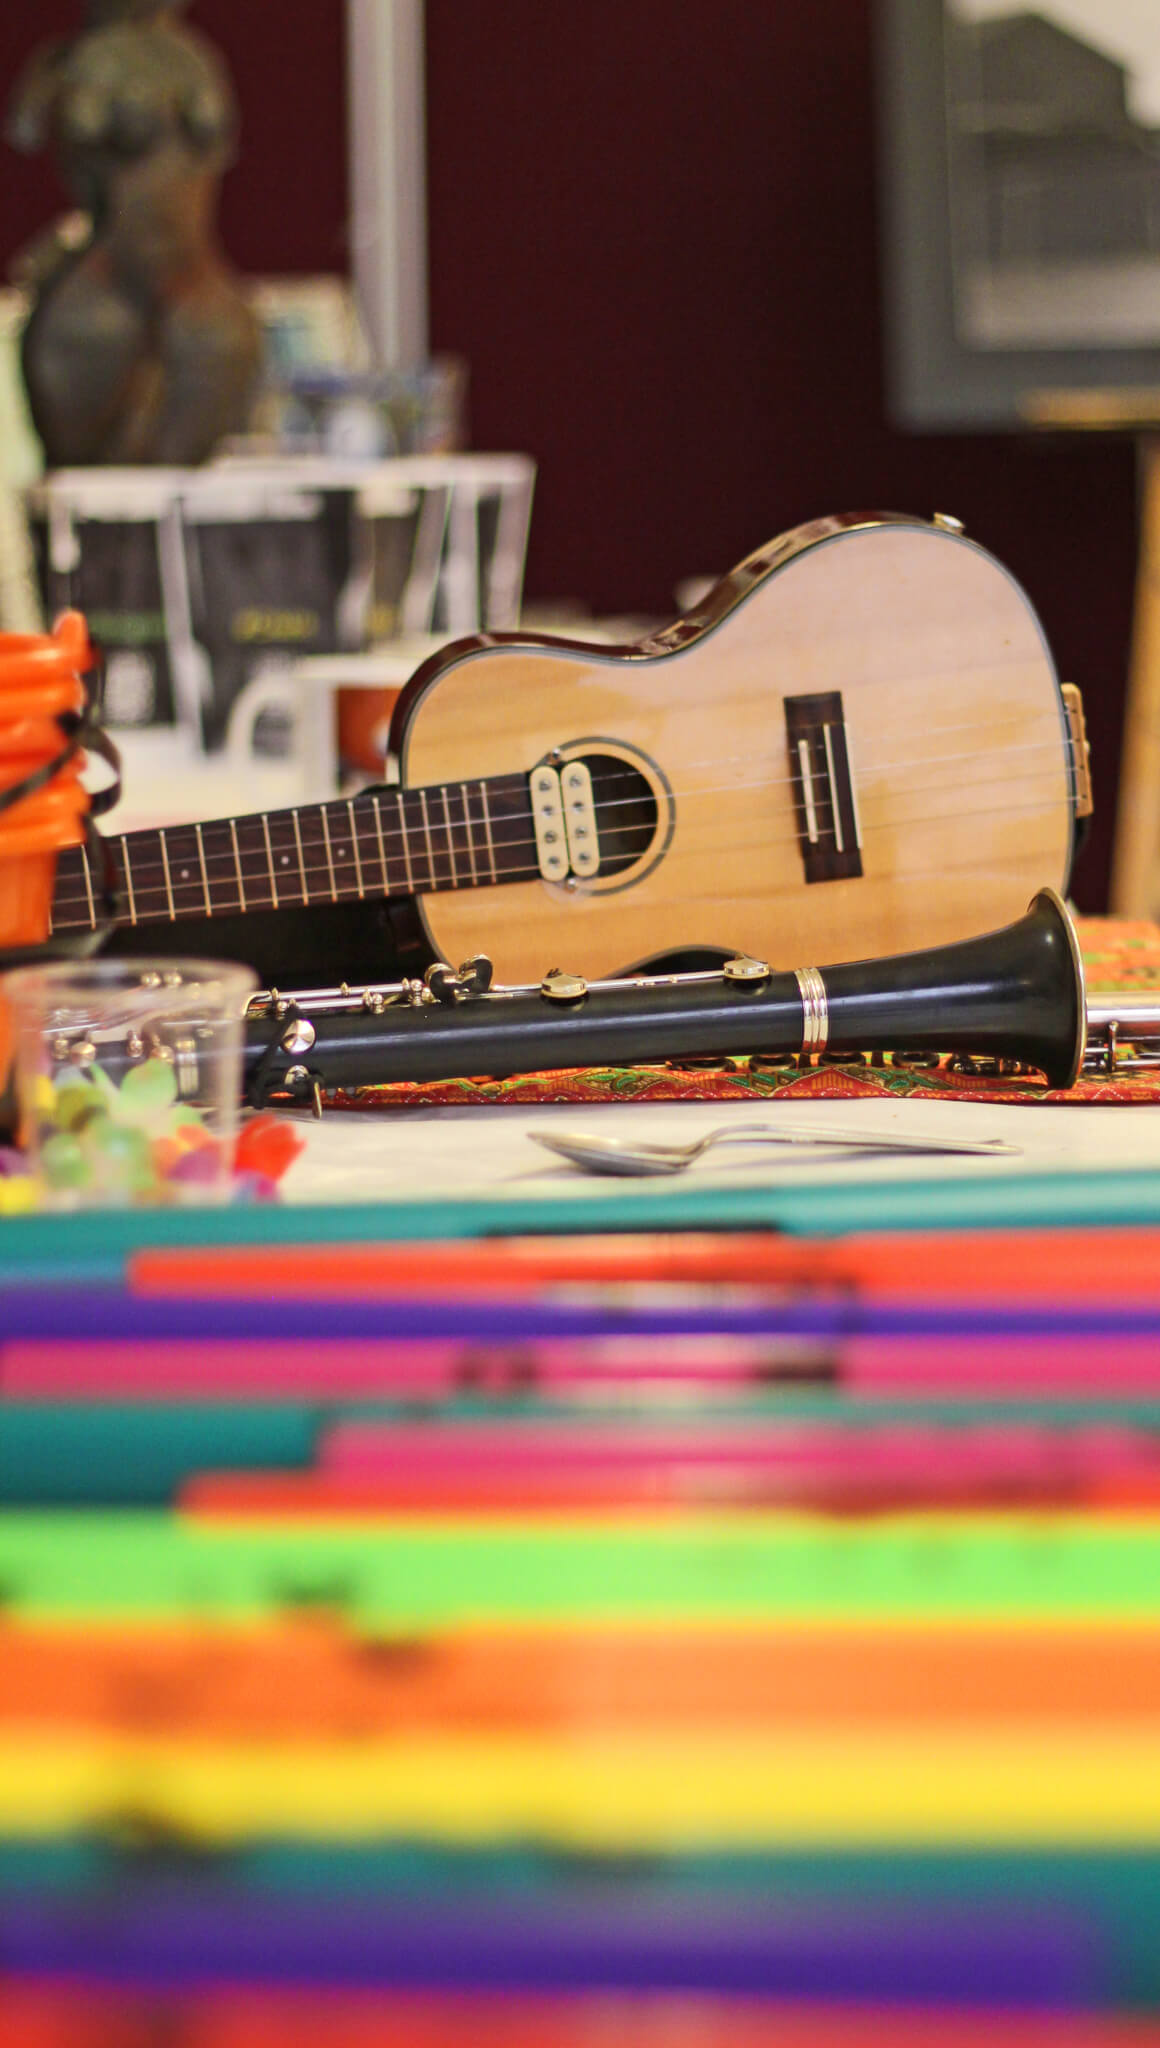 Guitar at an Artsmark Partnership Event